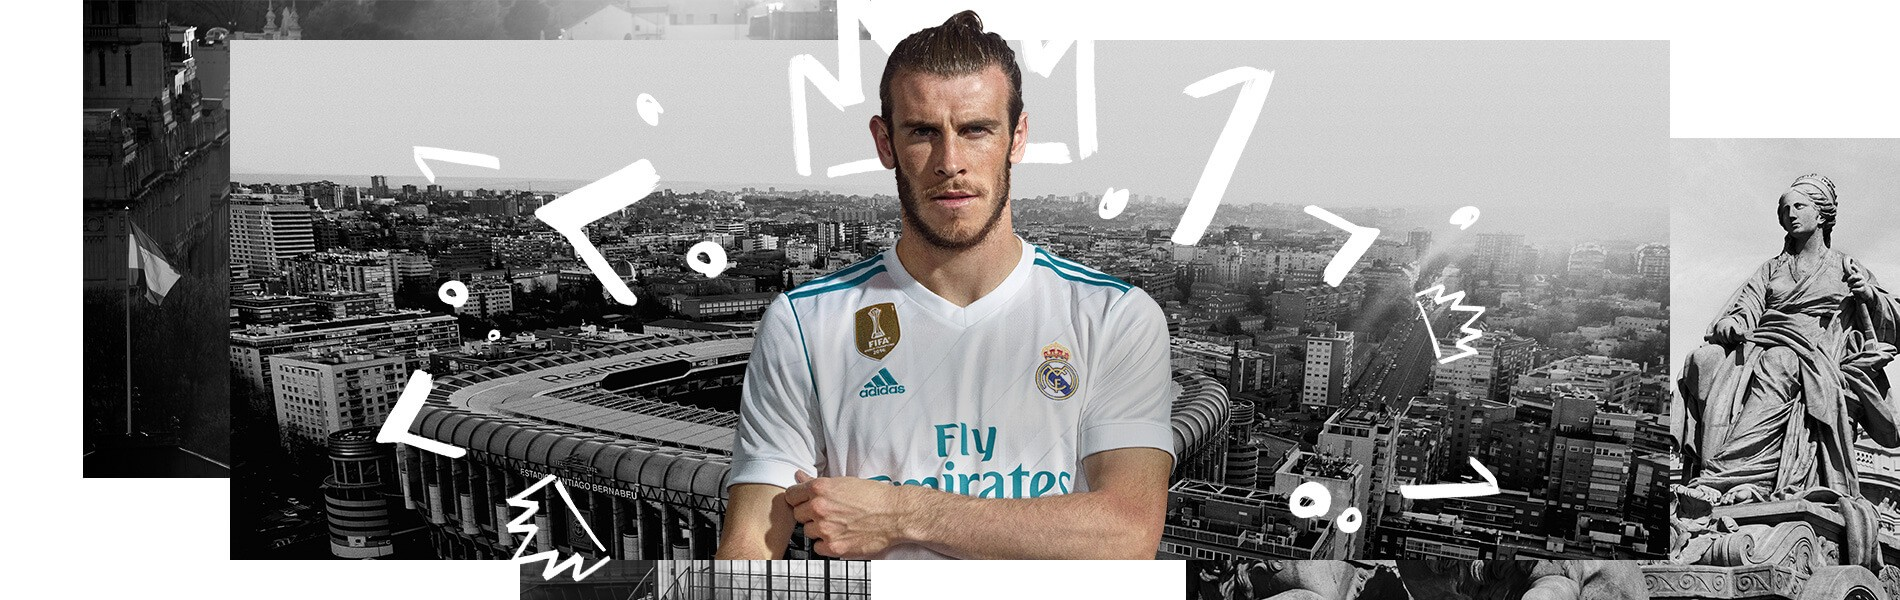 Real Madrid 2017/18